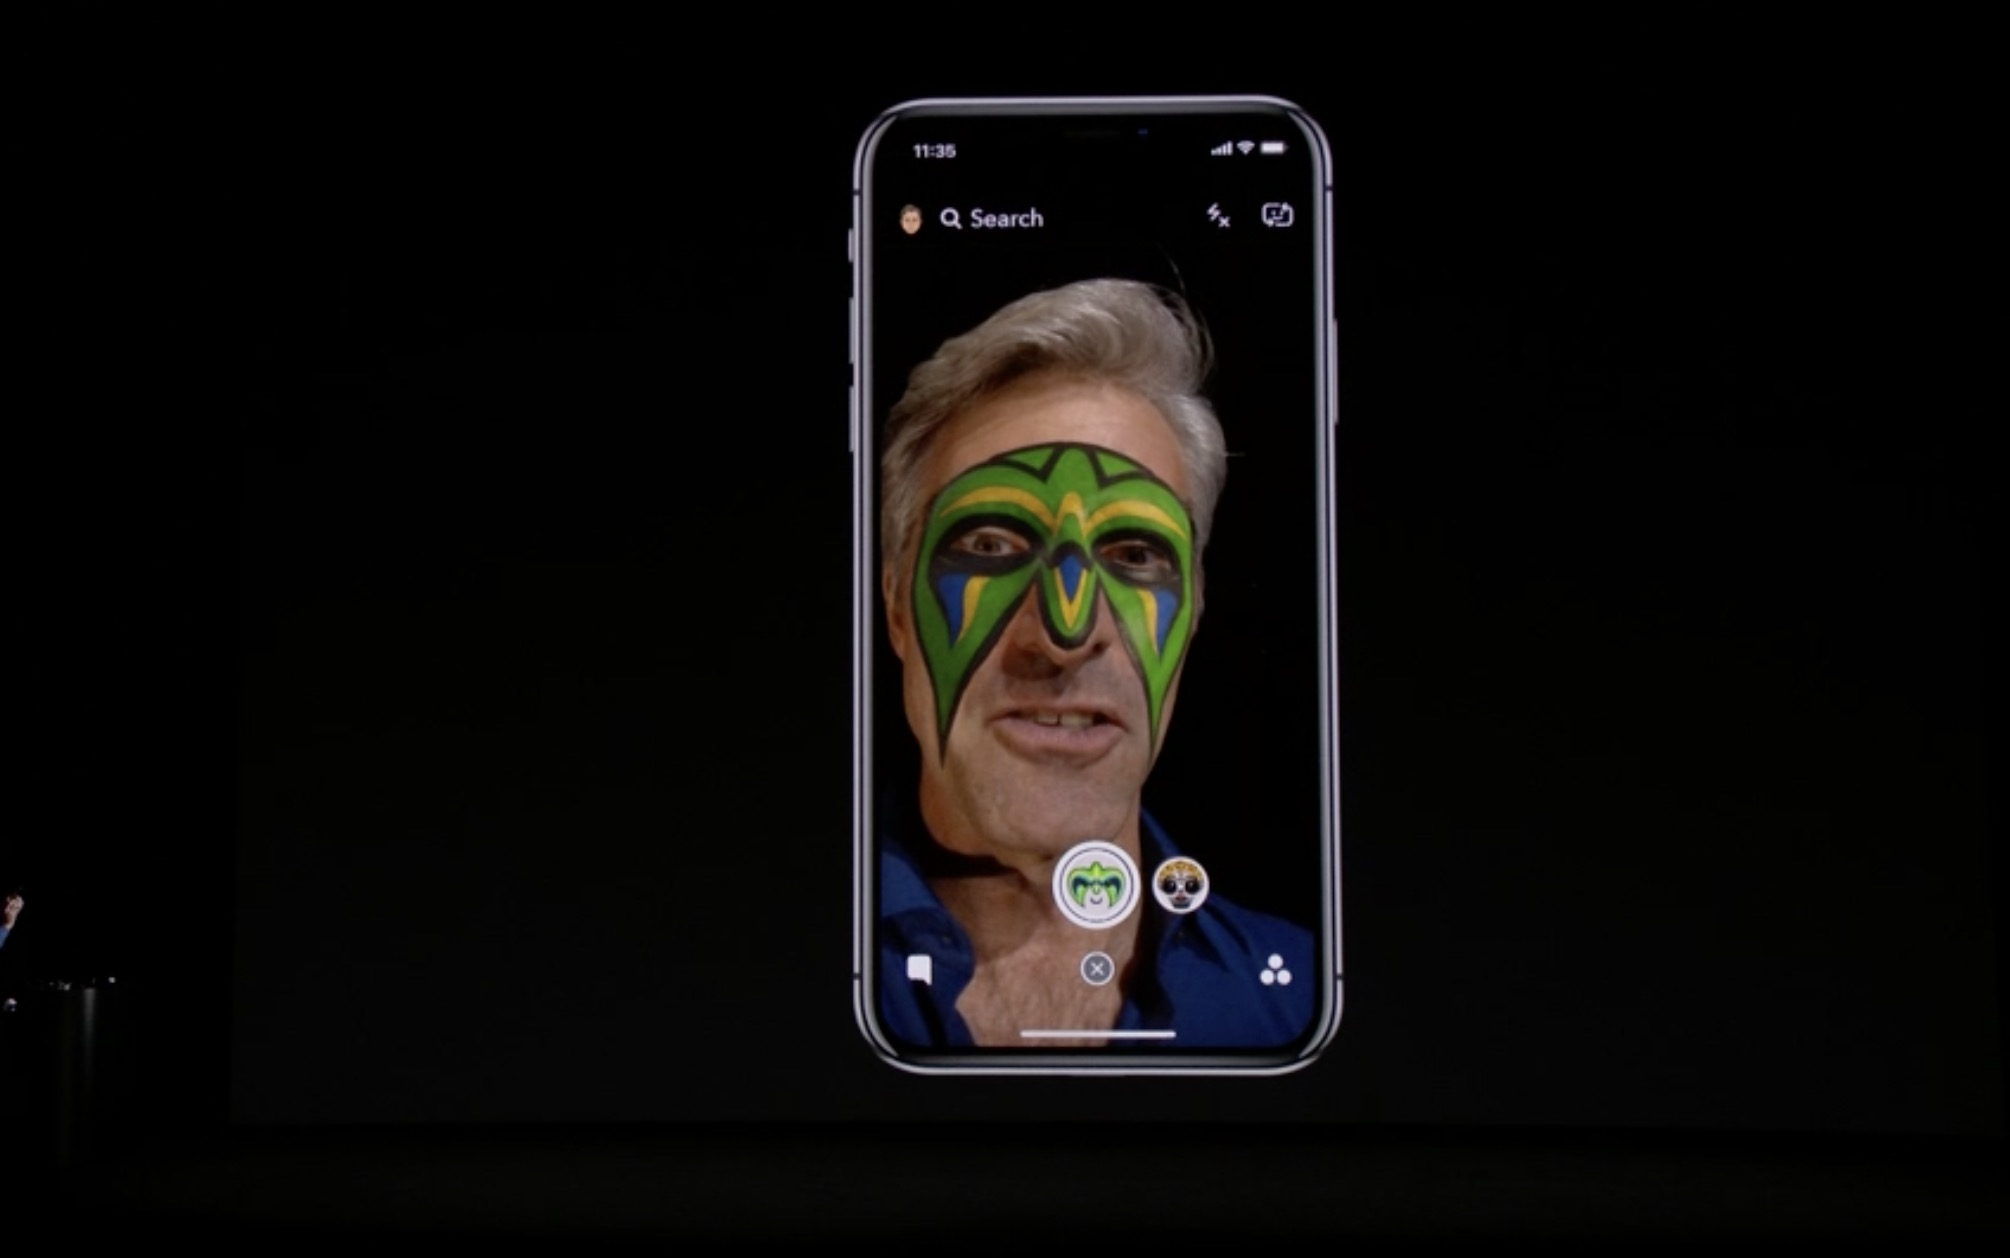 iPhone X Takes Snapchat Face Filters to 11